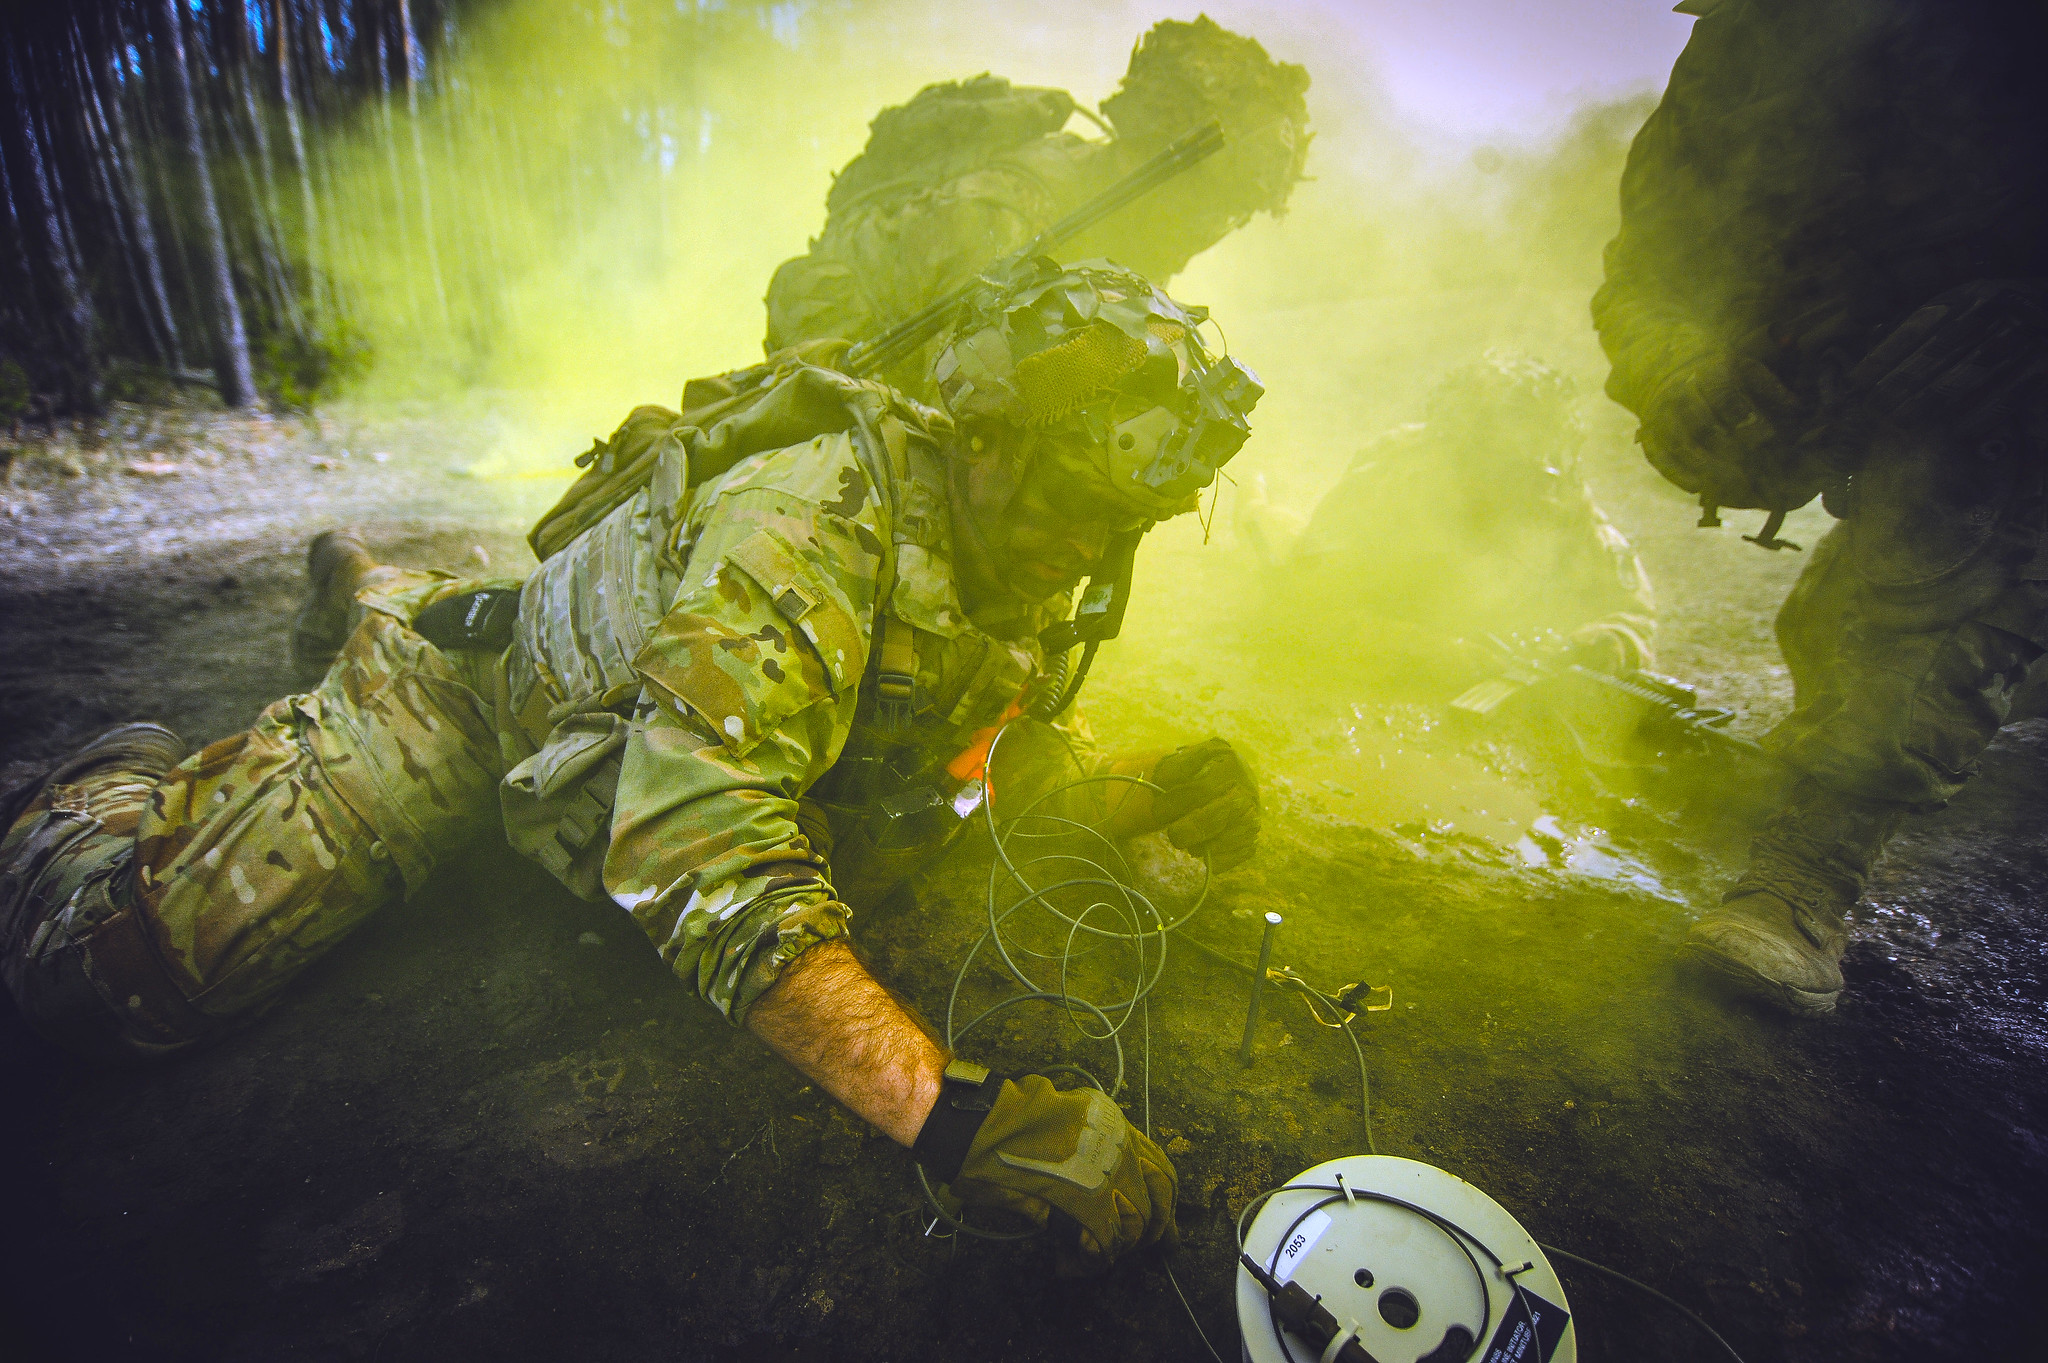 An Army paratrooper emplaces a braizer charge during Exercise Rock Spring 19 at Grafenwoehr Training Area, Germany, on March 6, 2019. (Army)